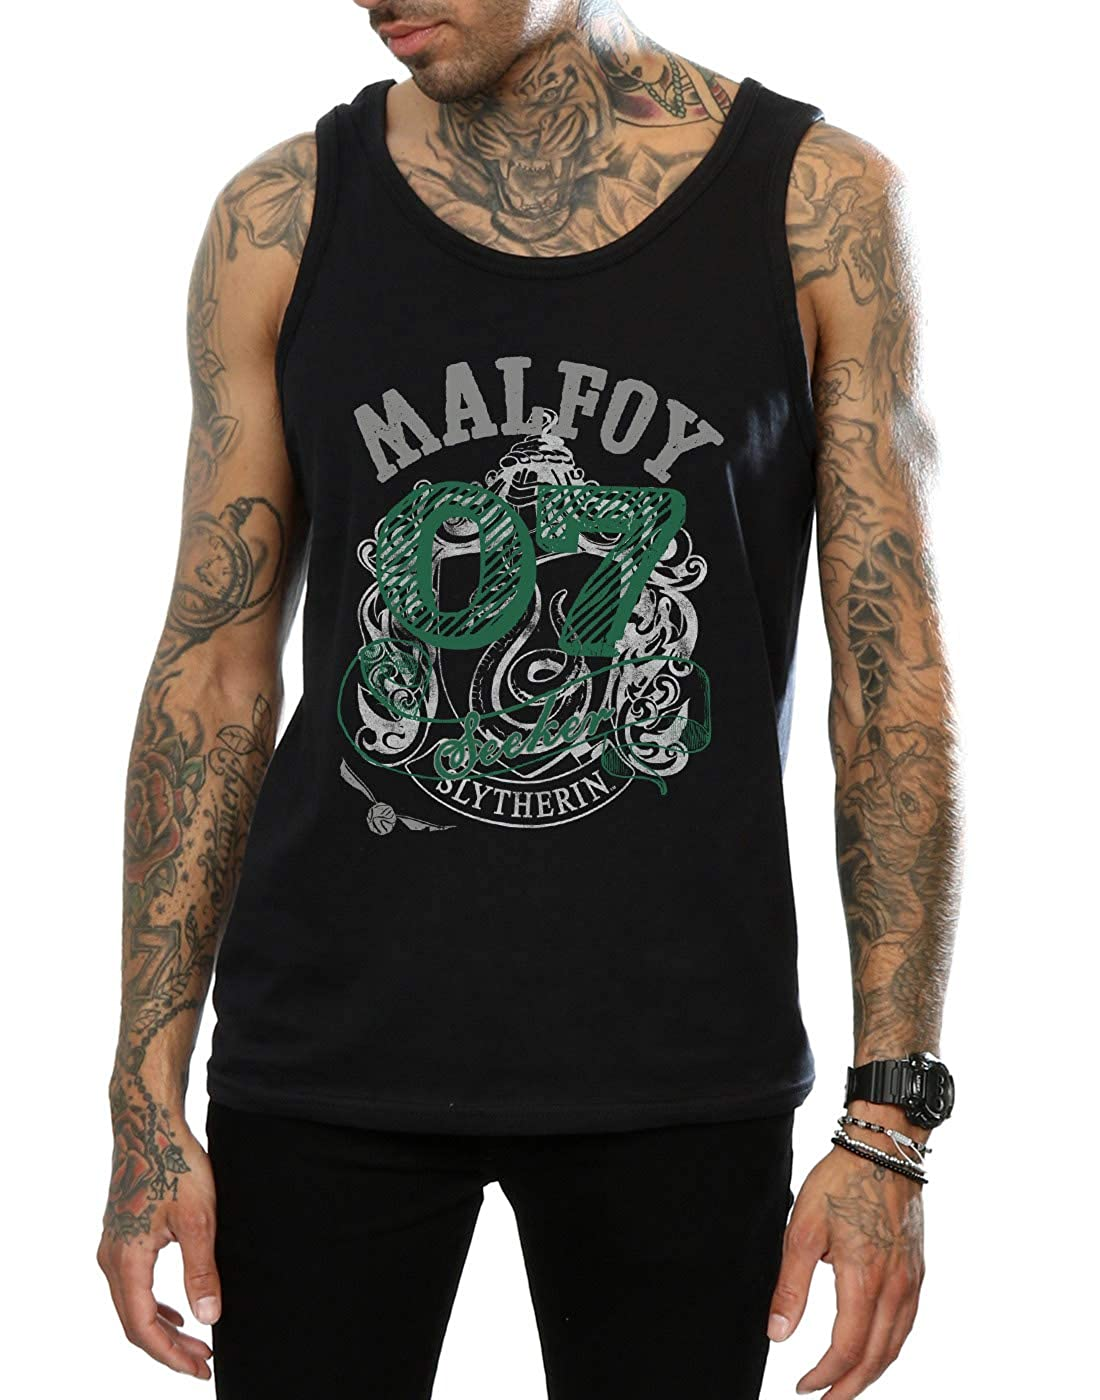 HARRY POTTER Mens Draco Malfoy Seeker Tank Top